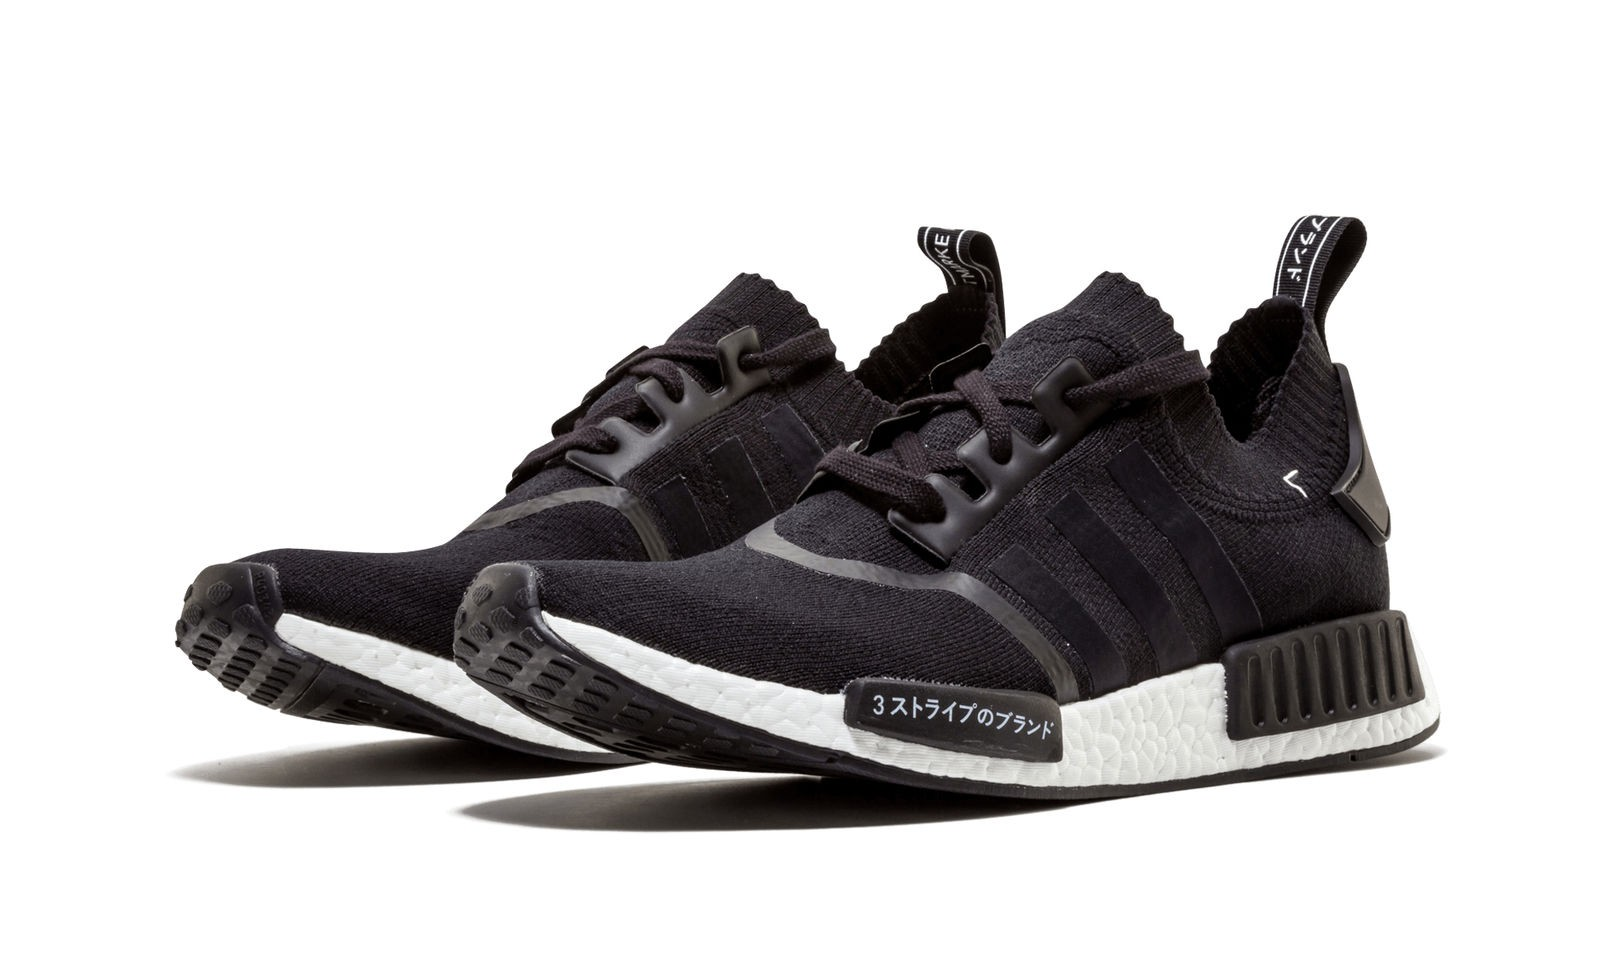 ADIDAS NMD R1 PK '' JAPAN BOOST'' Black